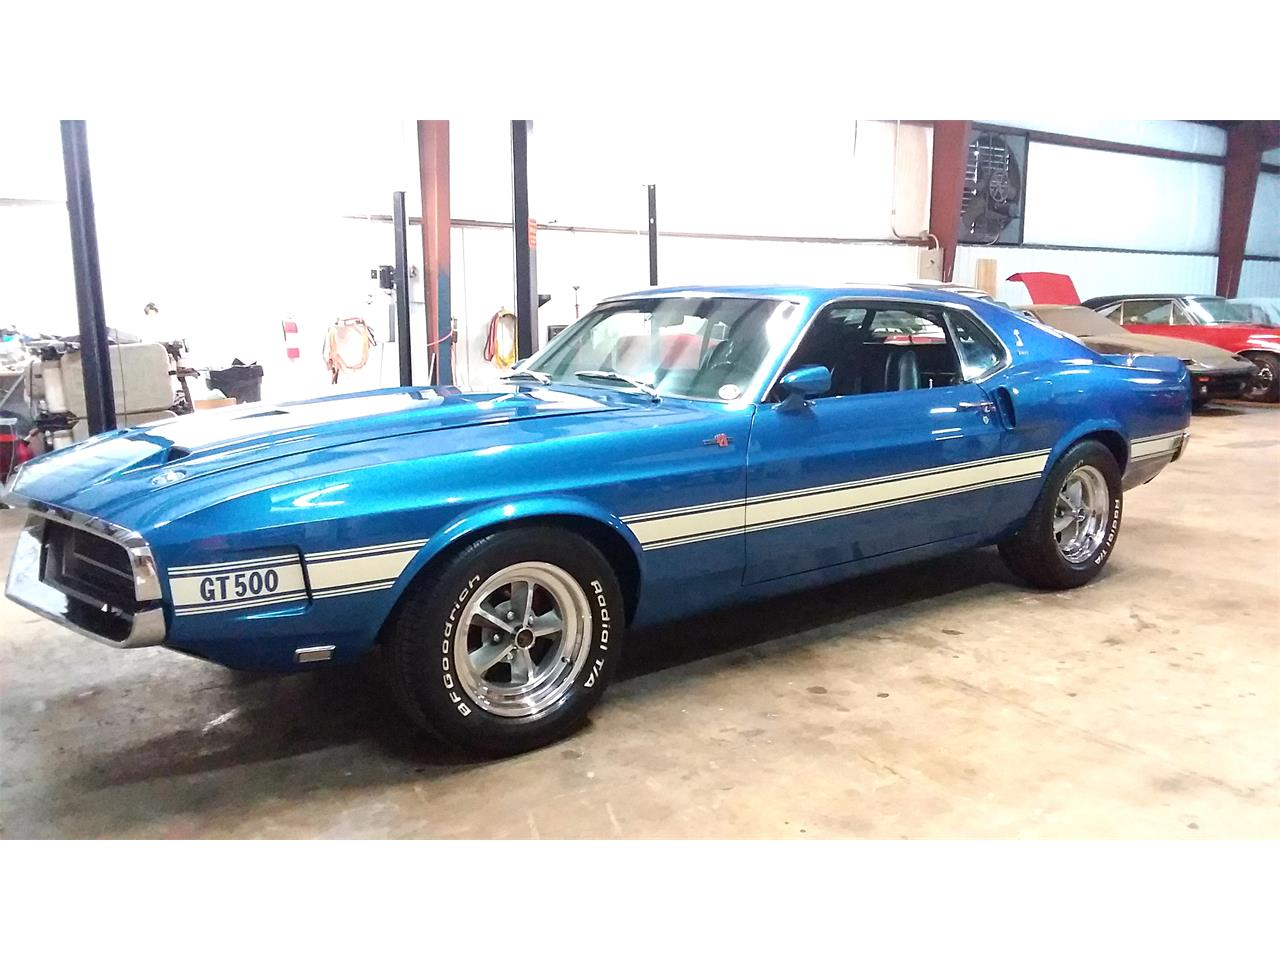 Large Picture of 1969 Mustang GT500 Fastback located in North Carolina Auction Vehicle - P1GX